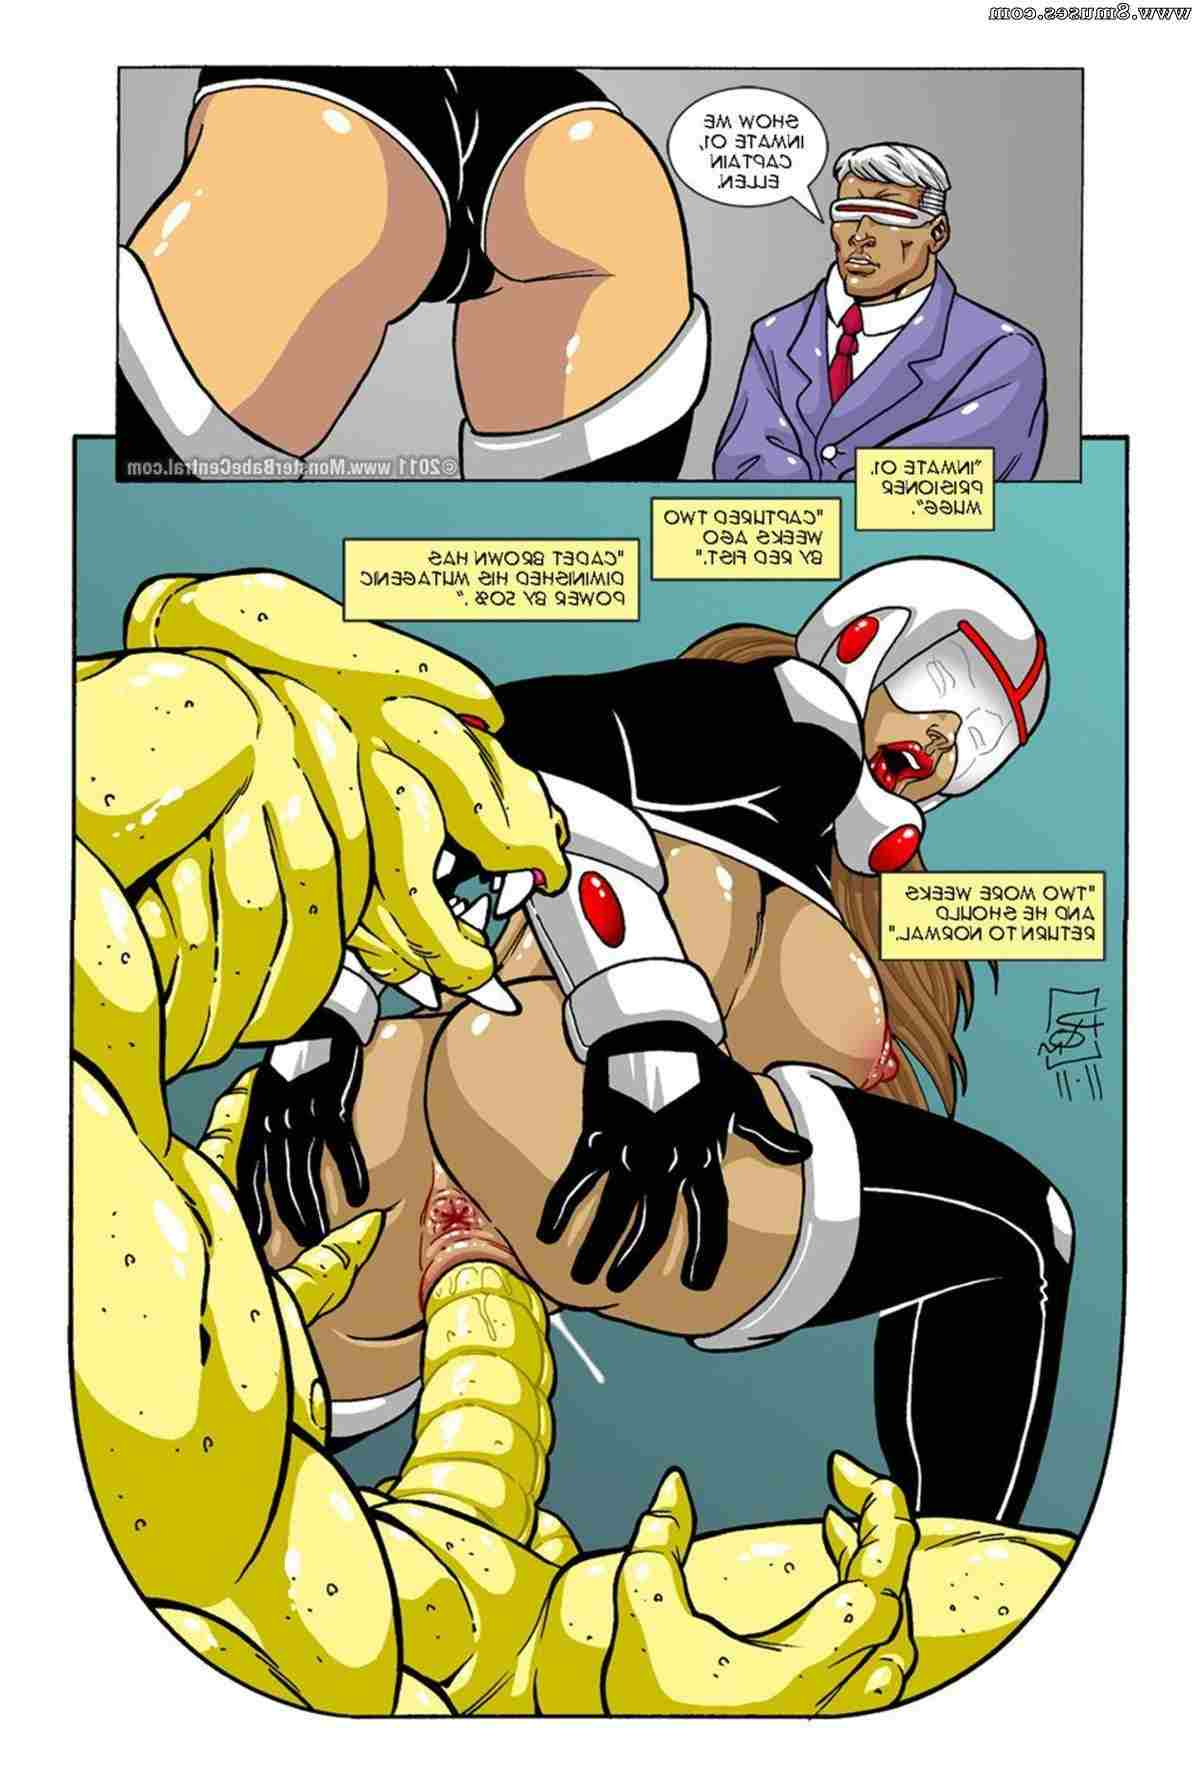 Central-Comics/Monster-Babe-Central/Omega-Fighters Omega_Fighters__8muses_-_Sex_and_Porn_Comics_72.jpg